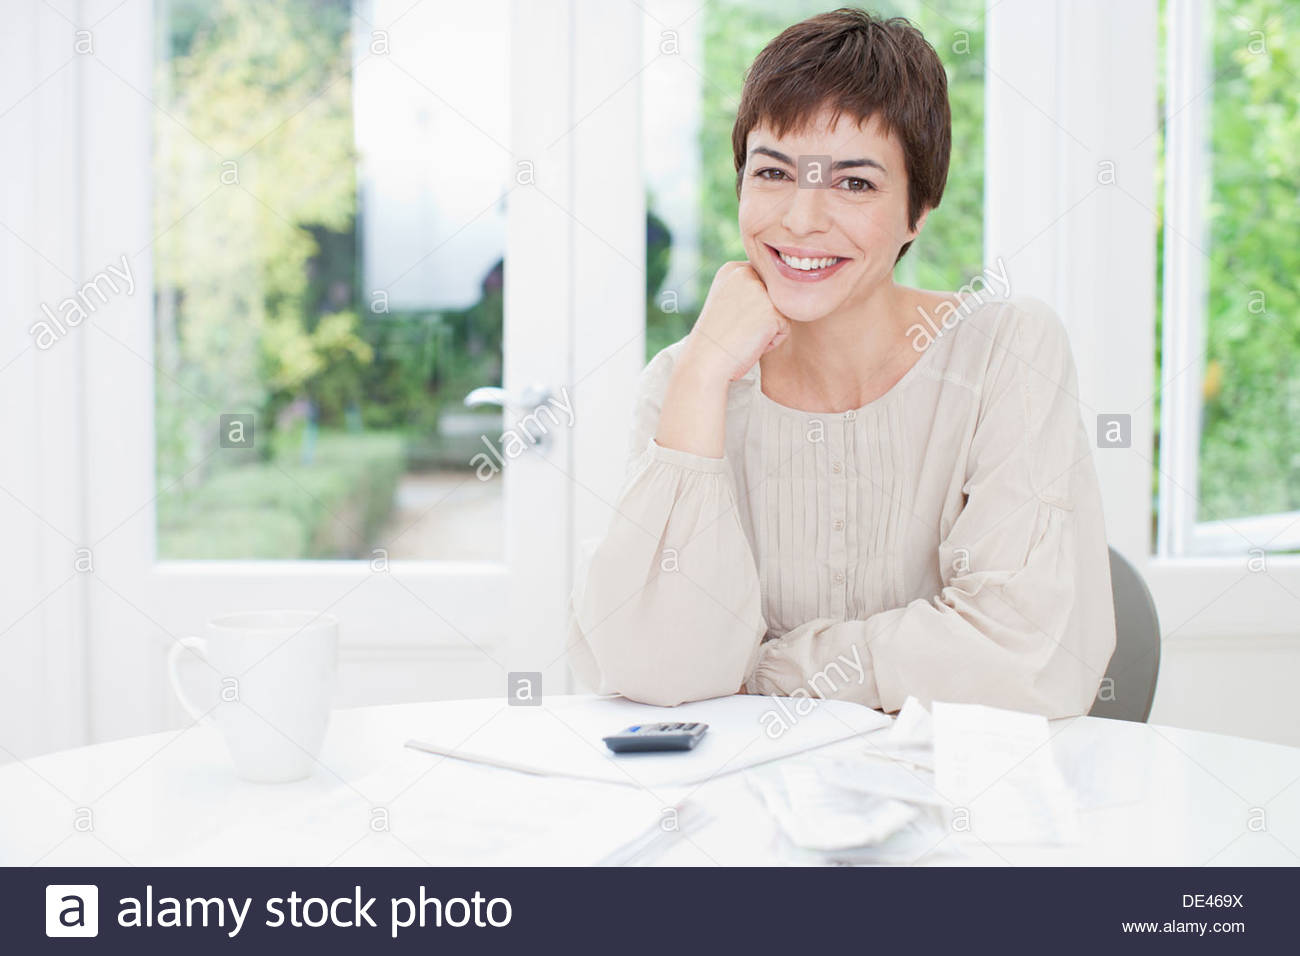 Smiling woman sitting at table paying bills - Stock Image